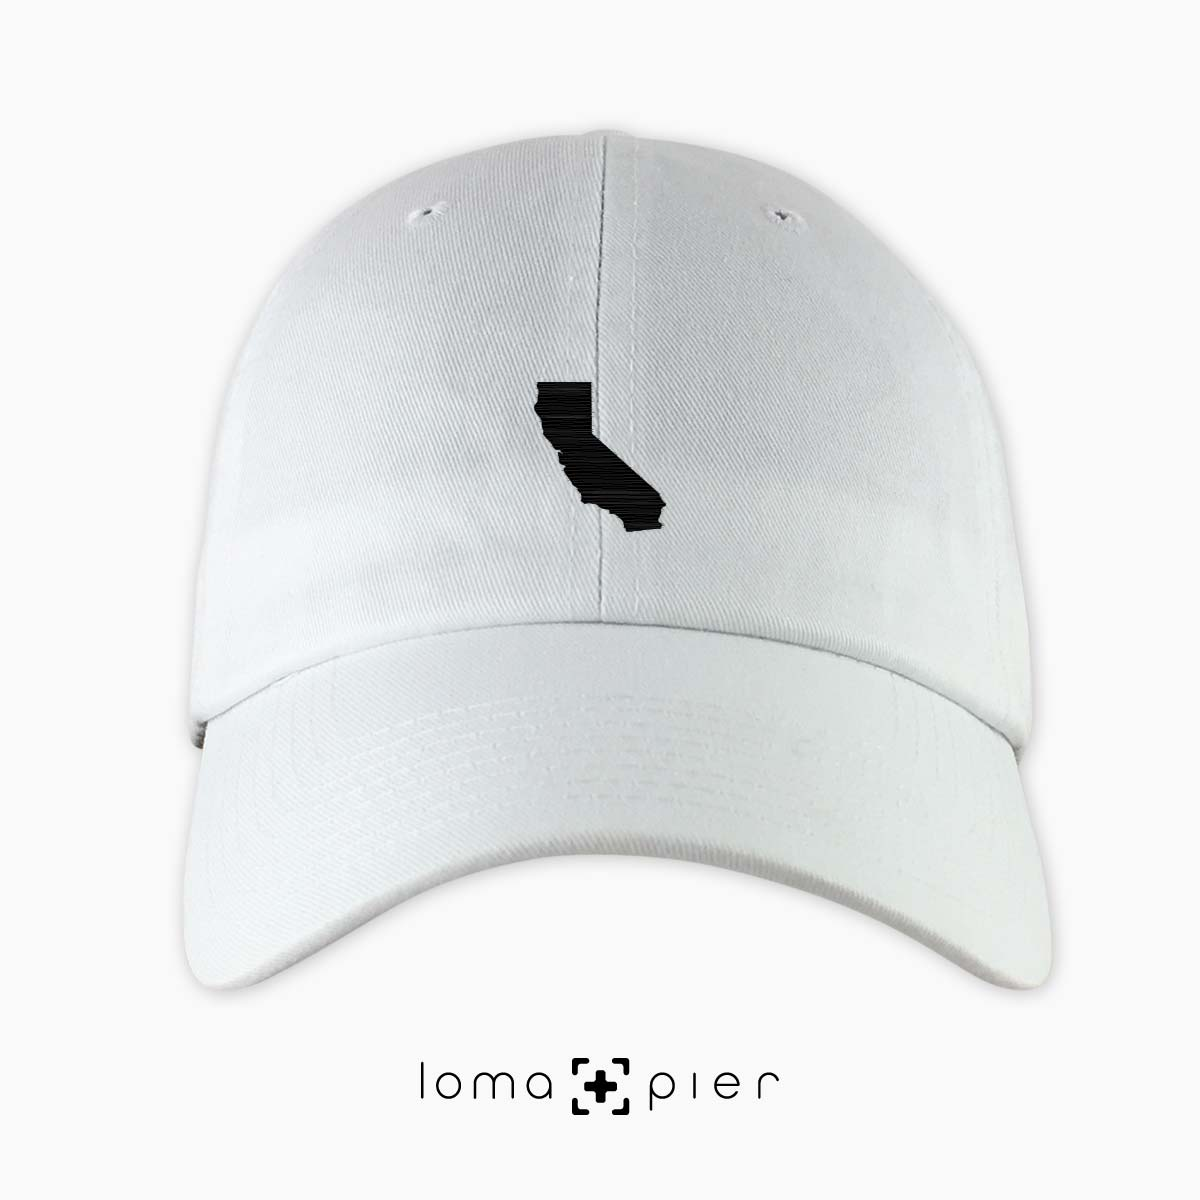 CALIFORNIA silhouette icon embroidered on a white unstructured dad hat by  loma+pier hat store 62f2090f5e2